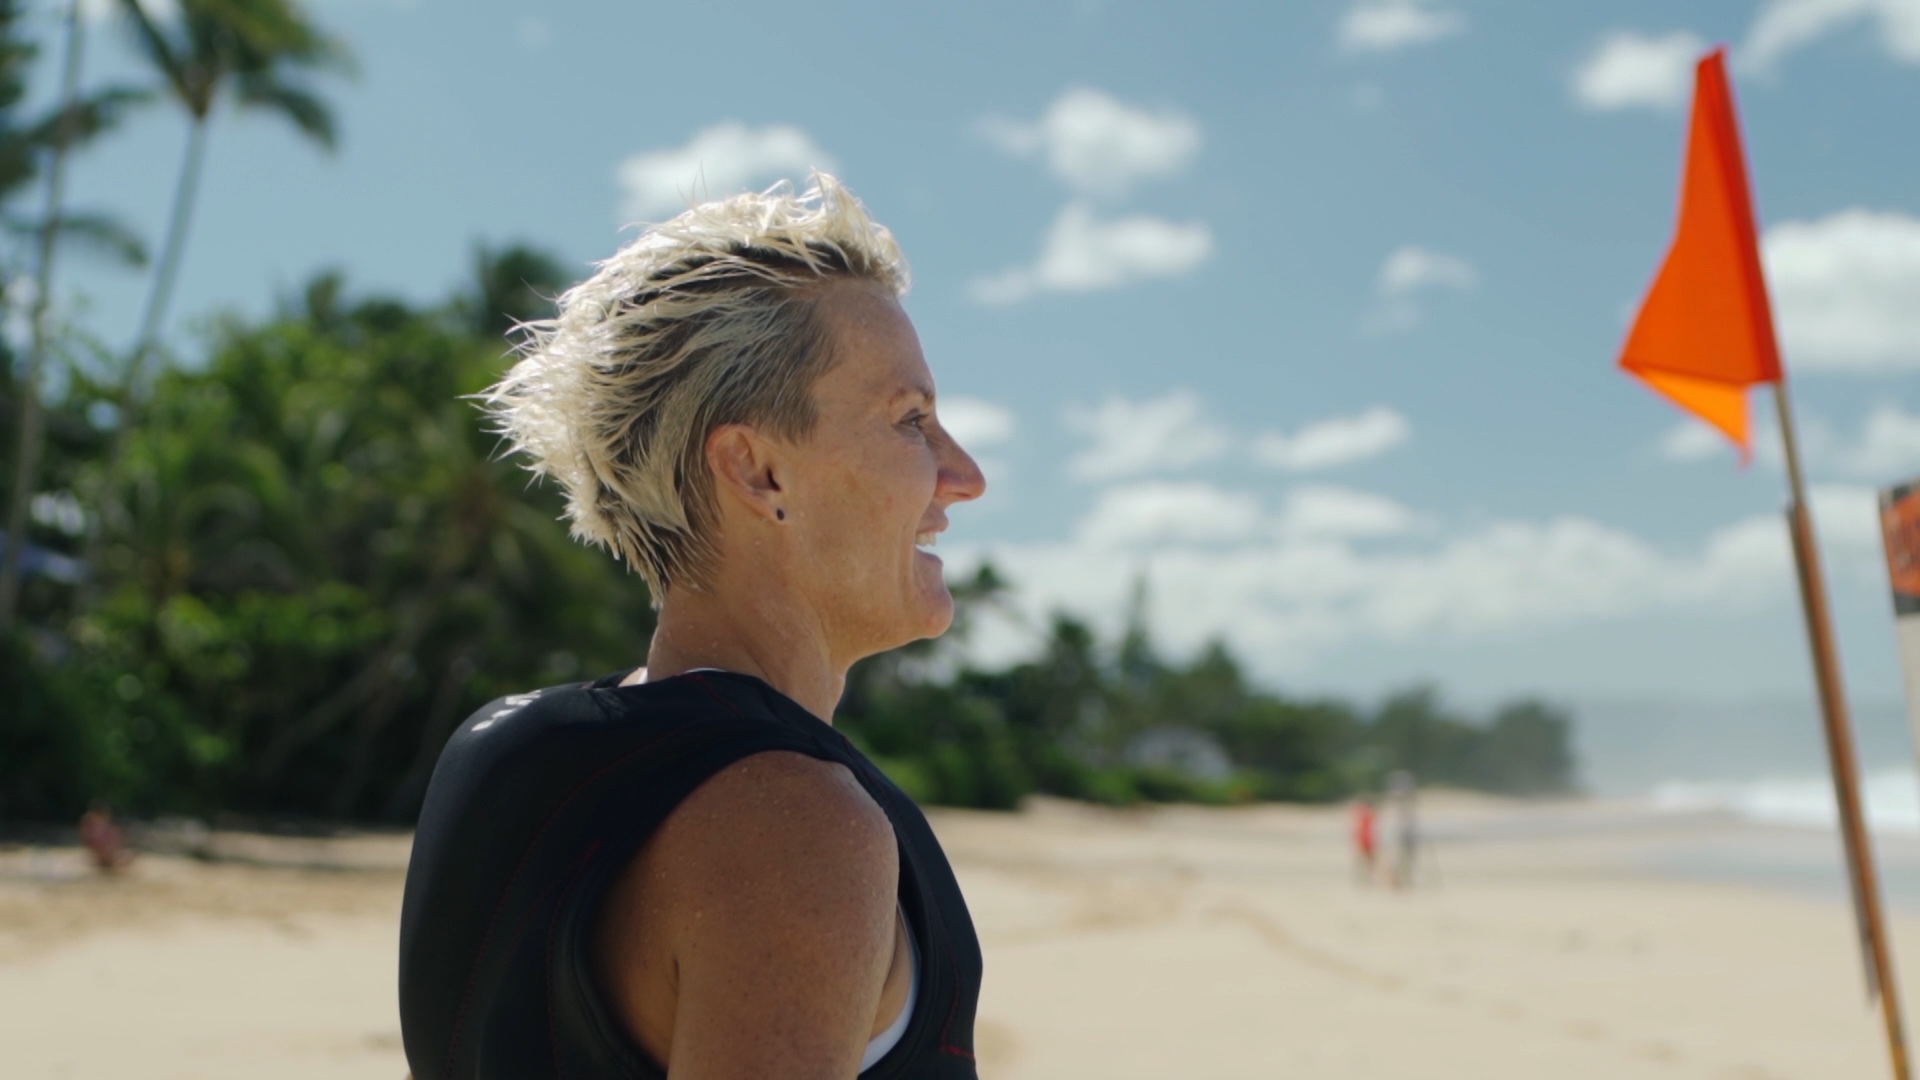 Town & Country with Surf Champion Keala Kennelly